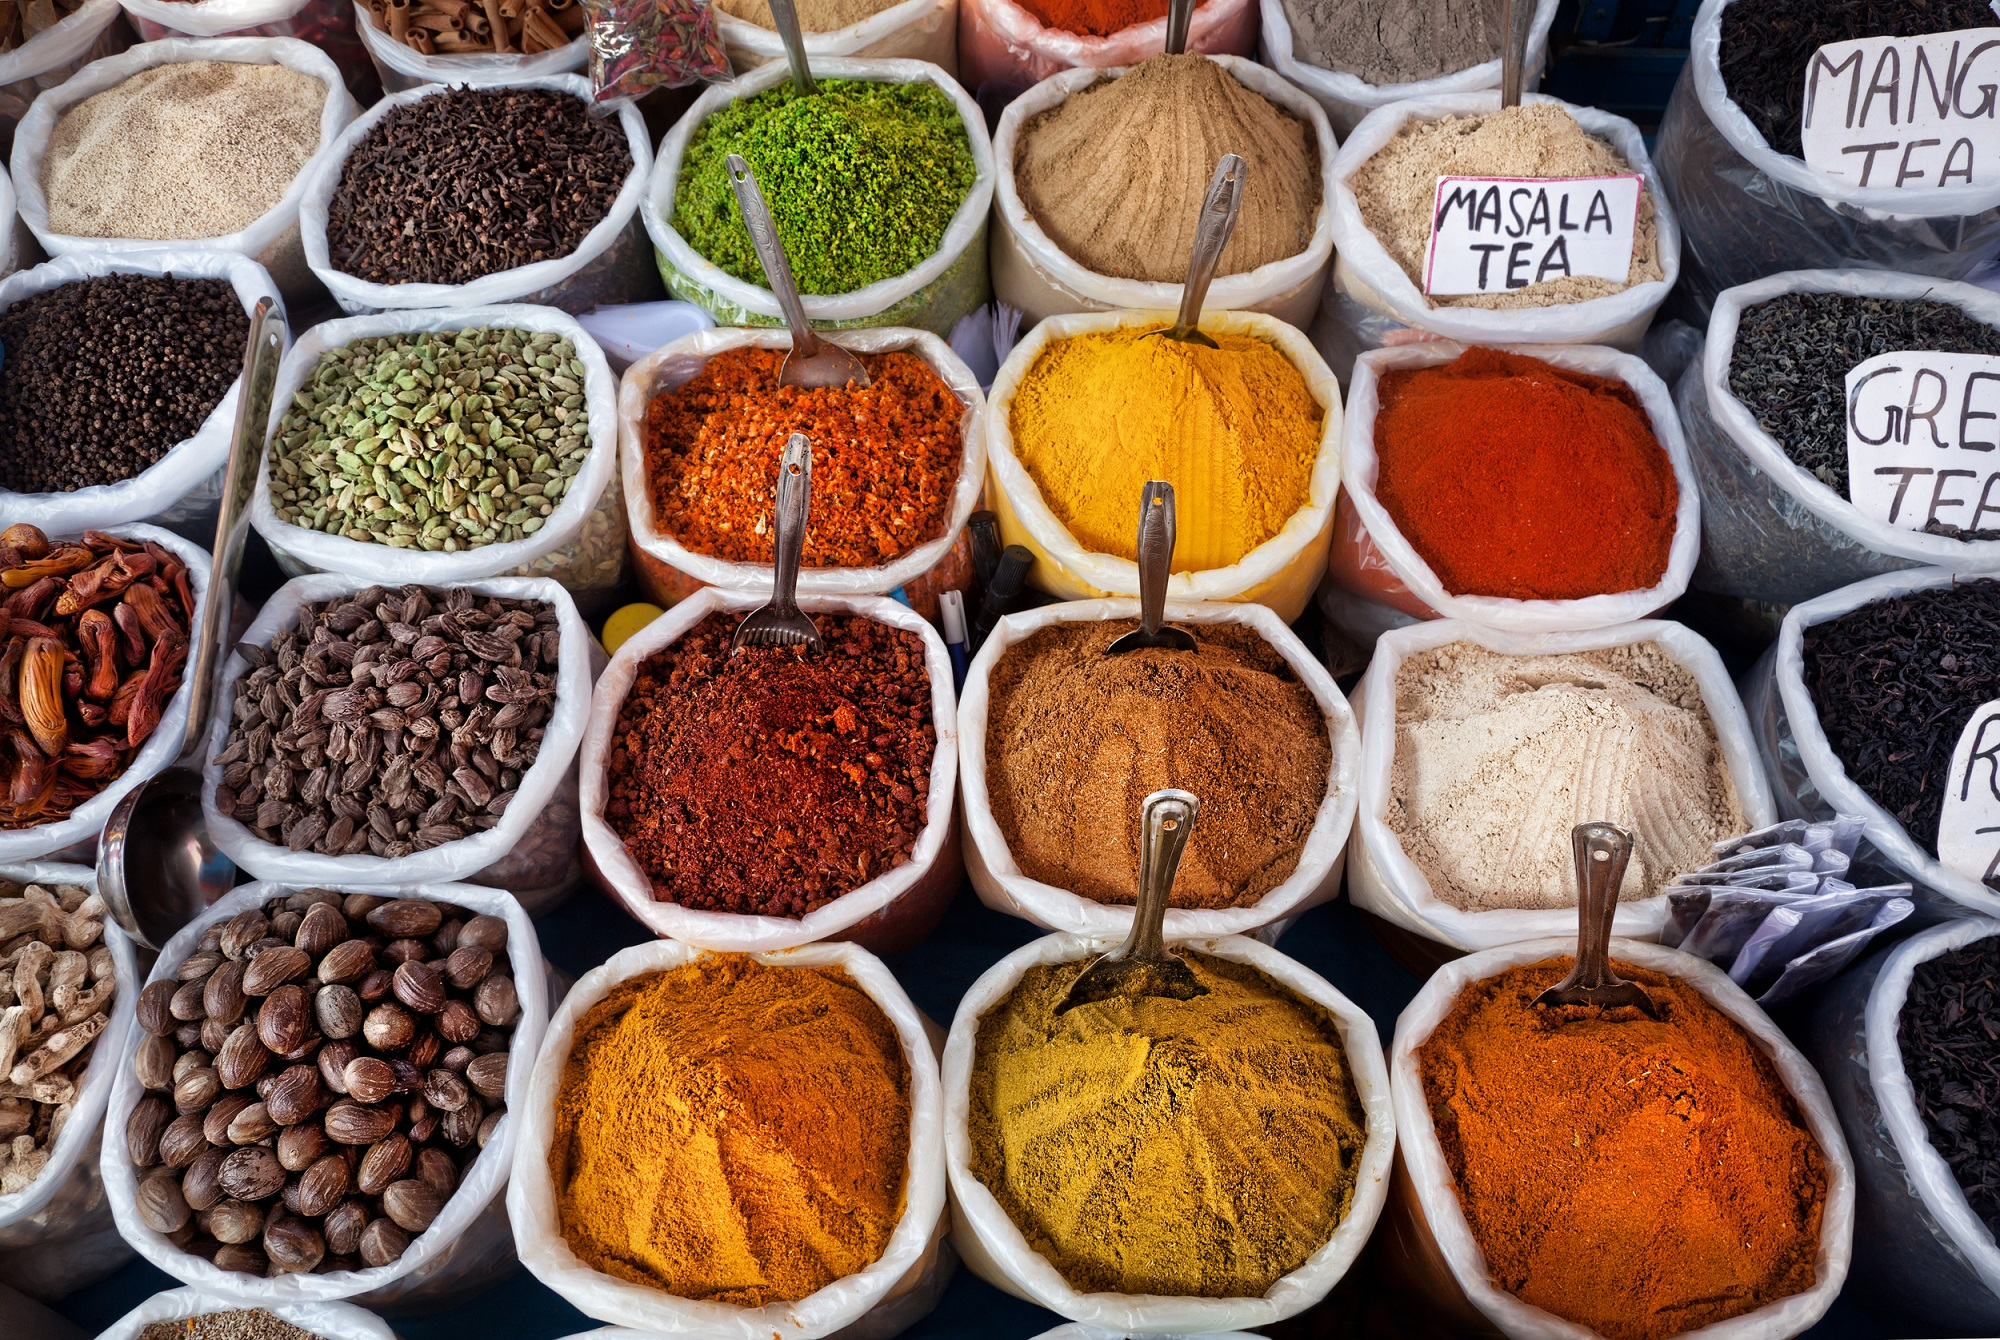 indian-colored-spices-at-anjuna-flea-market-in-goa-india-1